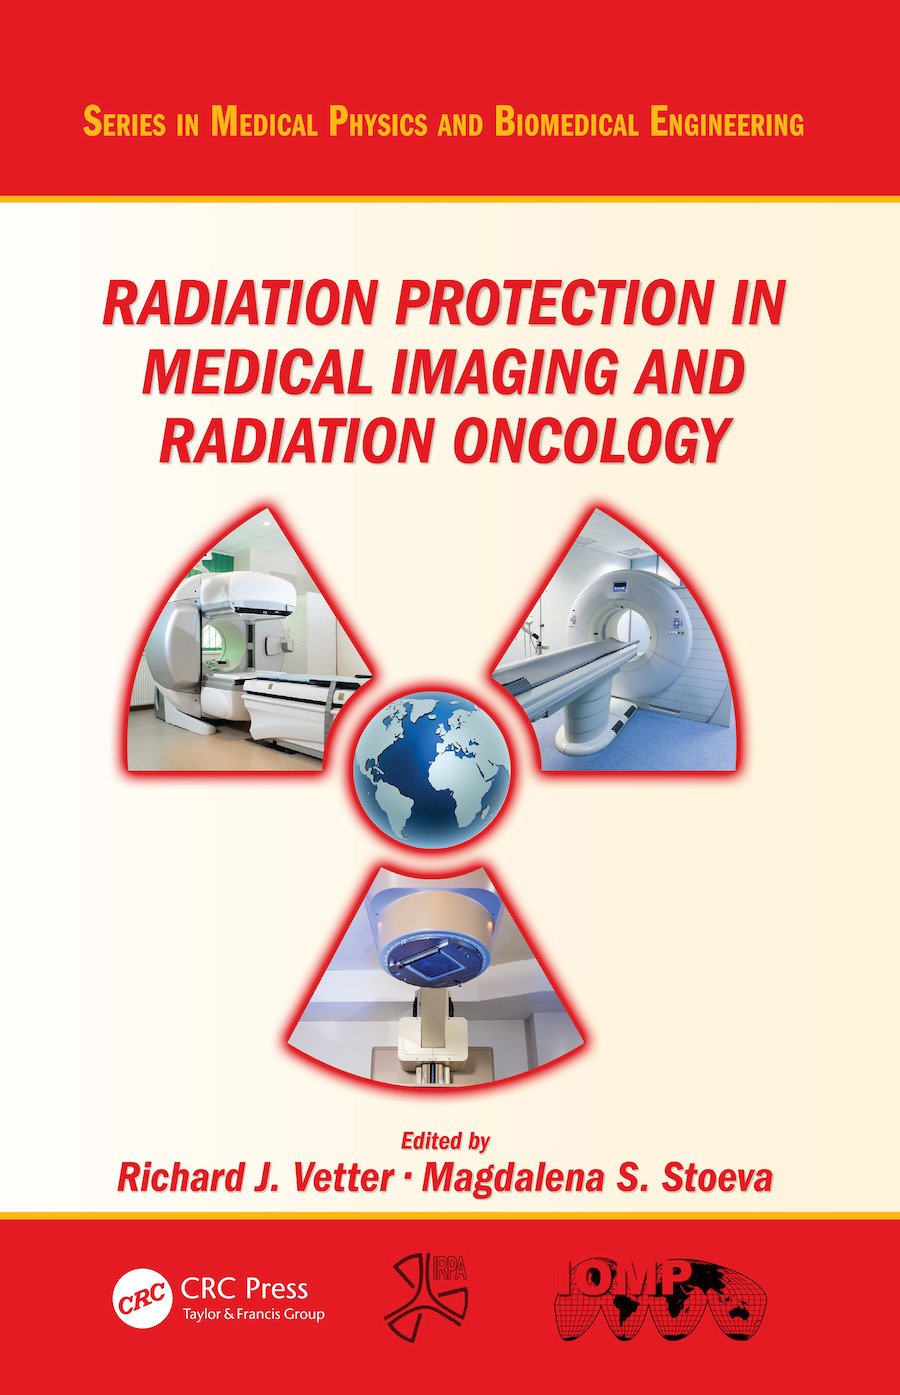 Radiation Protection in Medical Imaging and Radiation Oncology